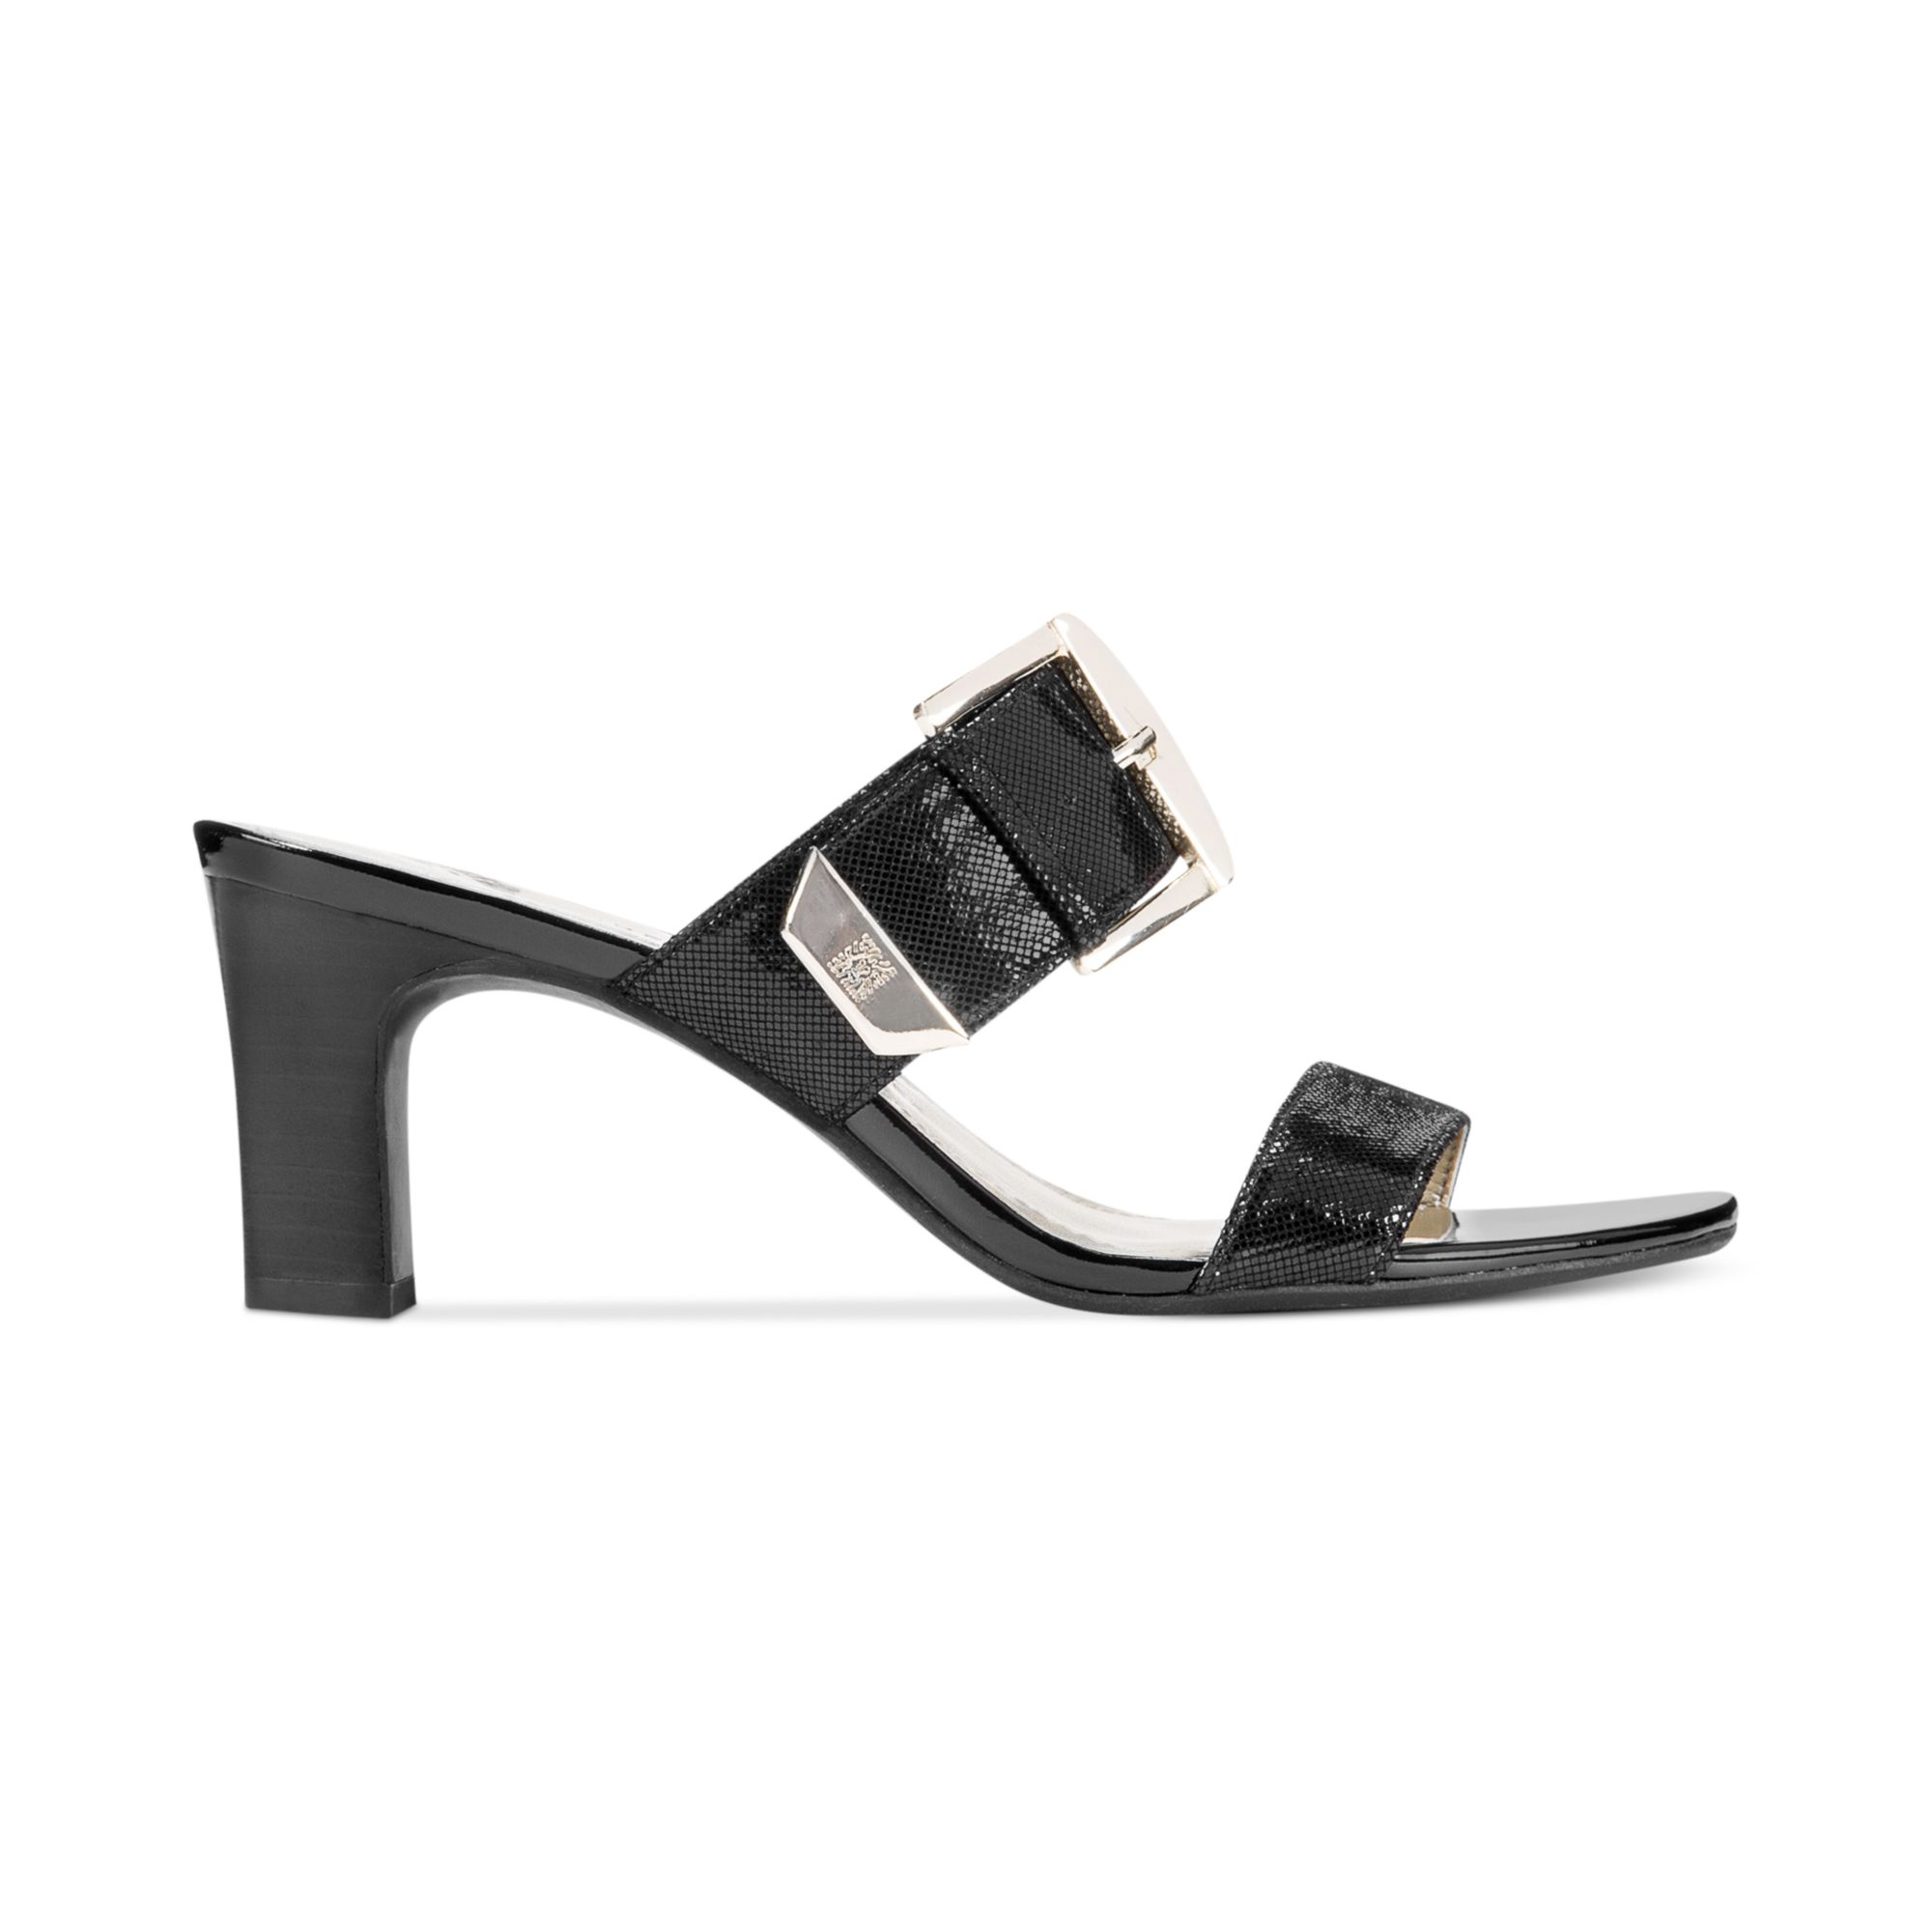 Anne klein Natascha Dress Sandals in Black | Lyst